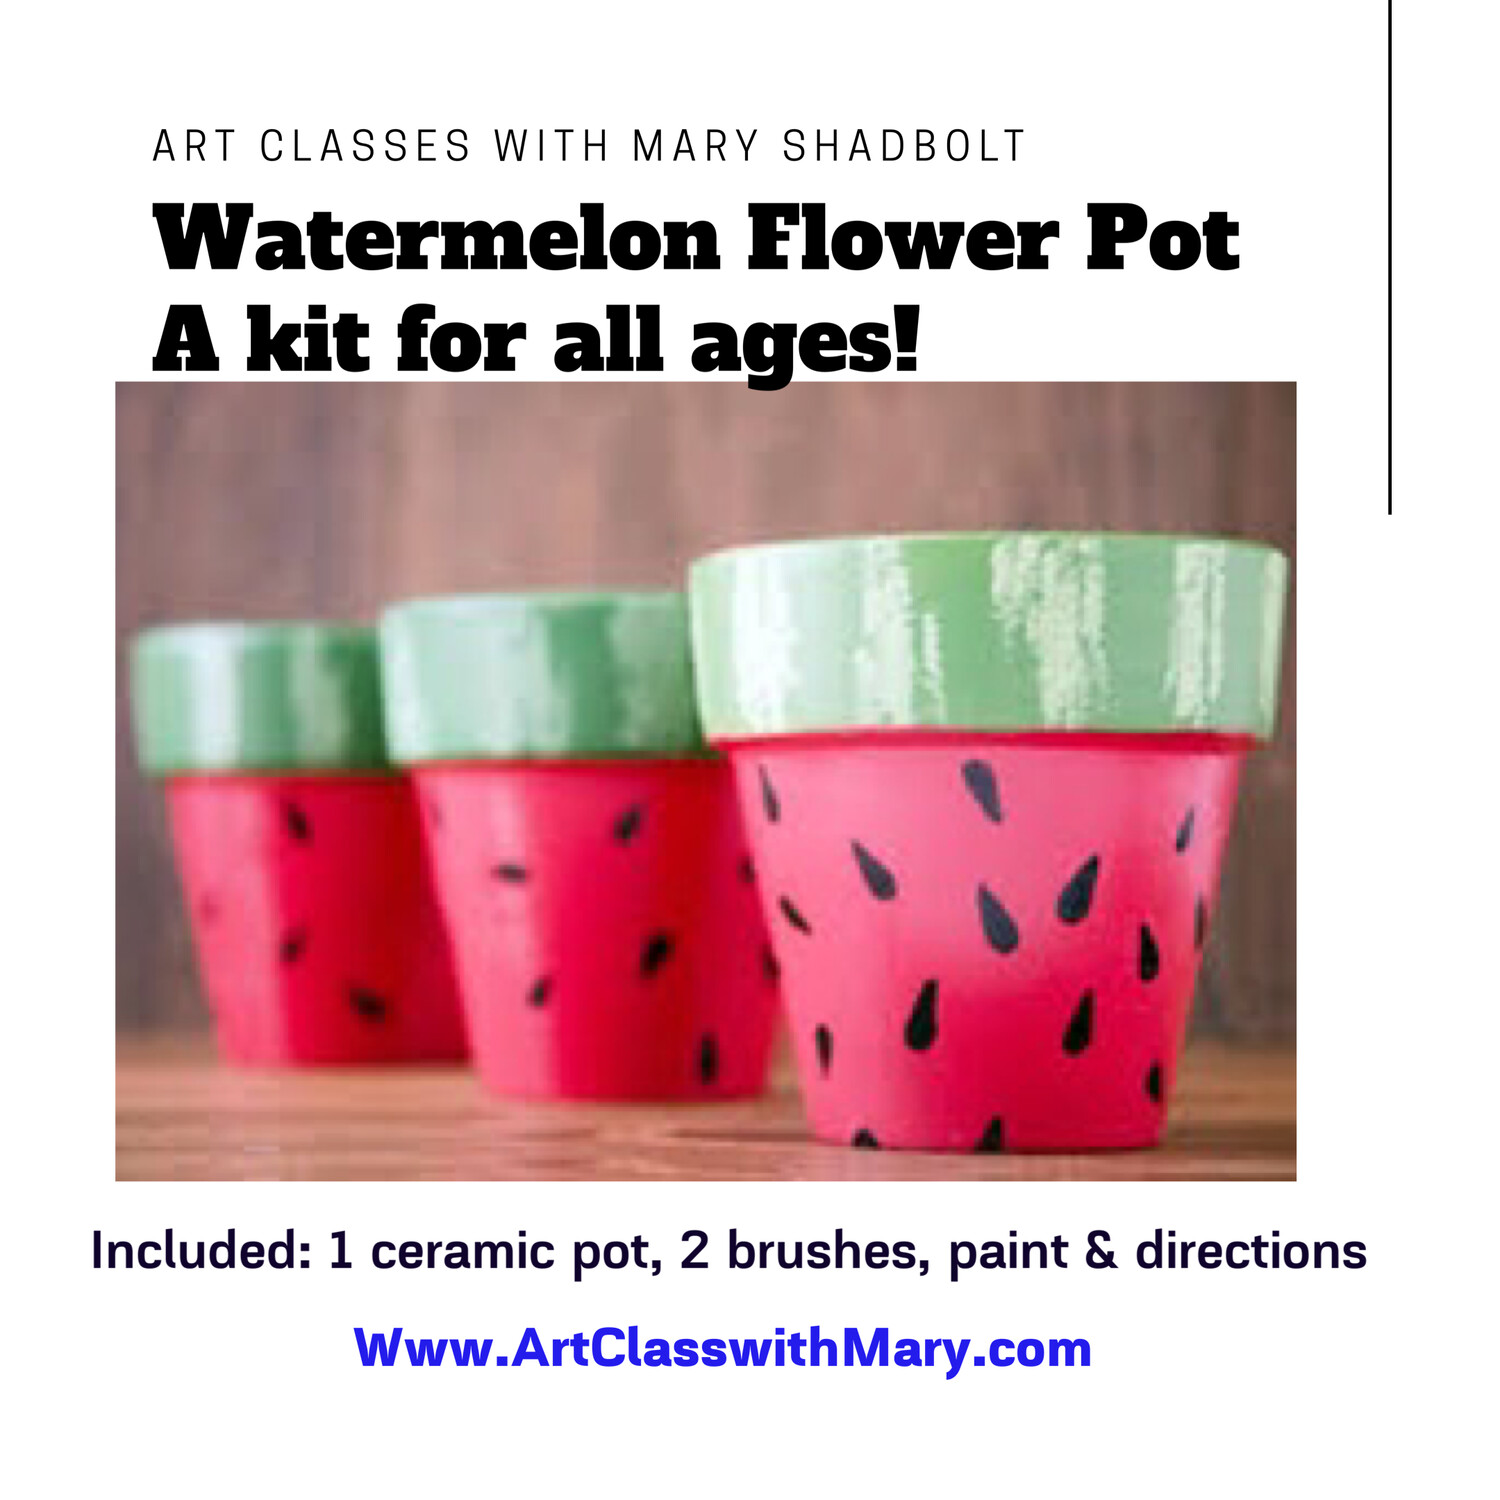 A Watermelon Flower Pot kit